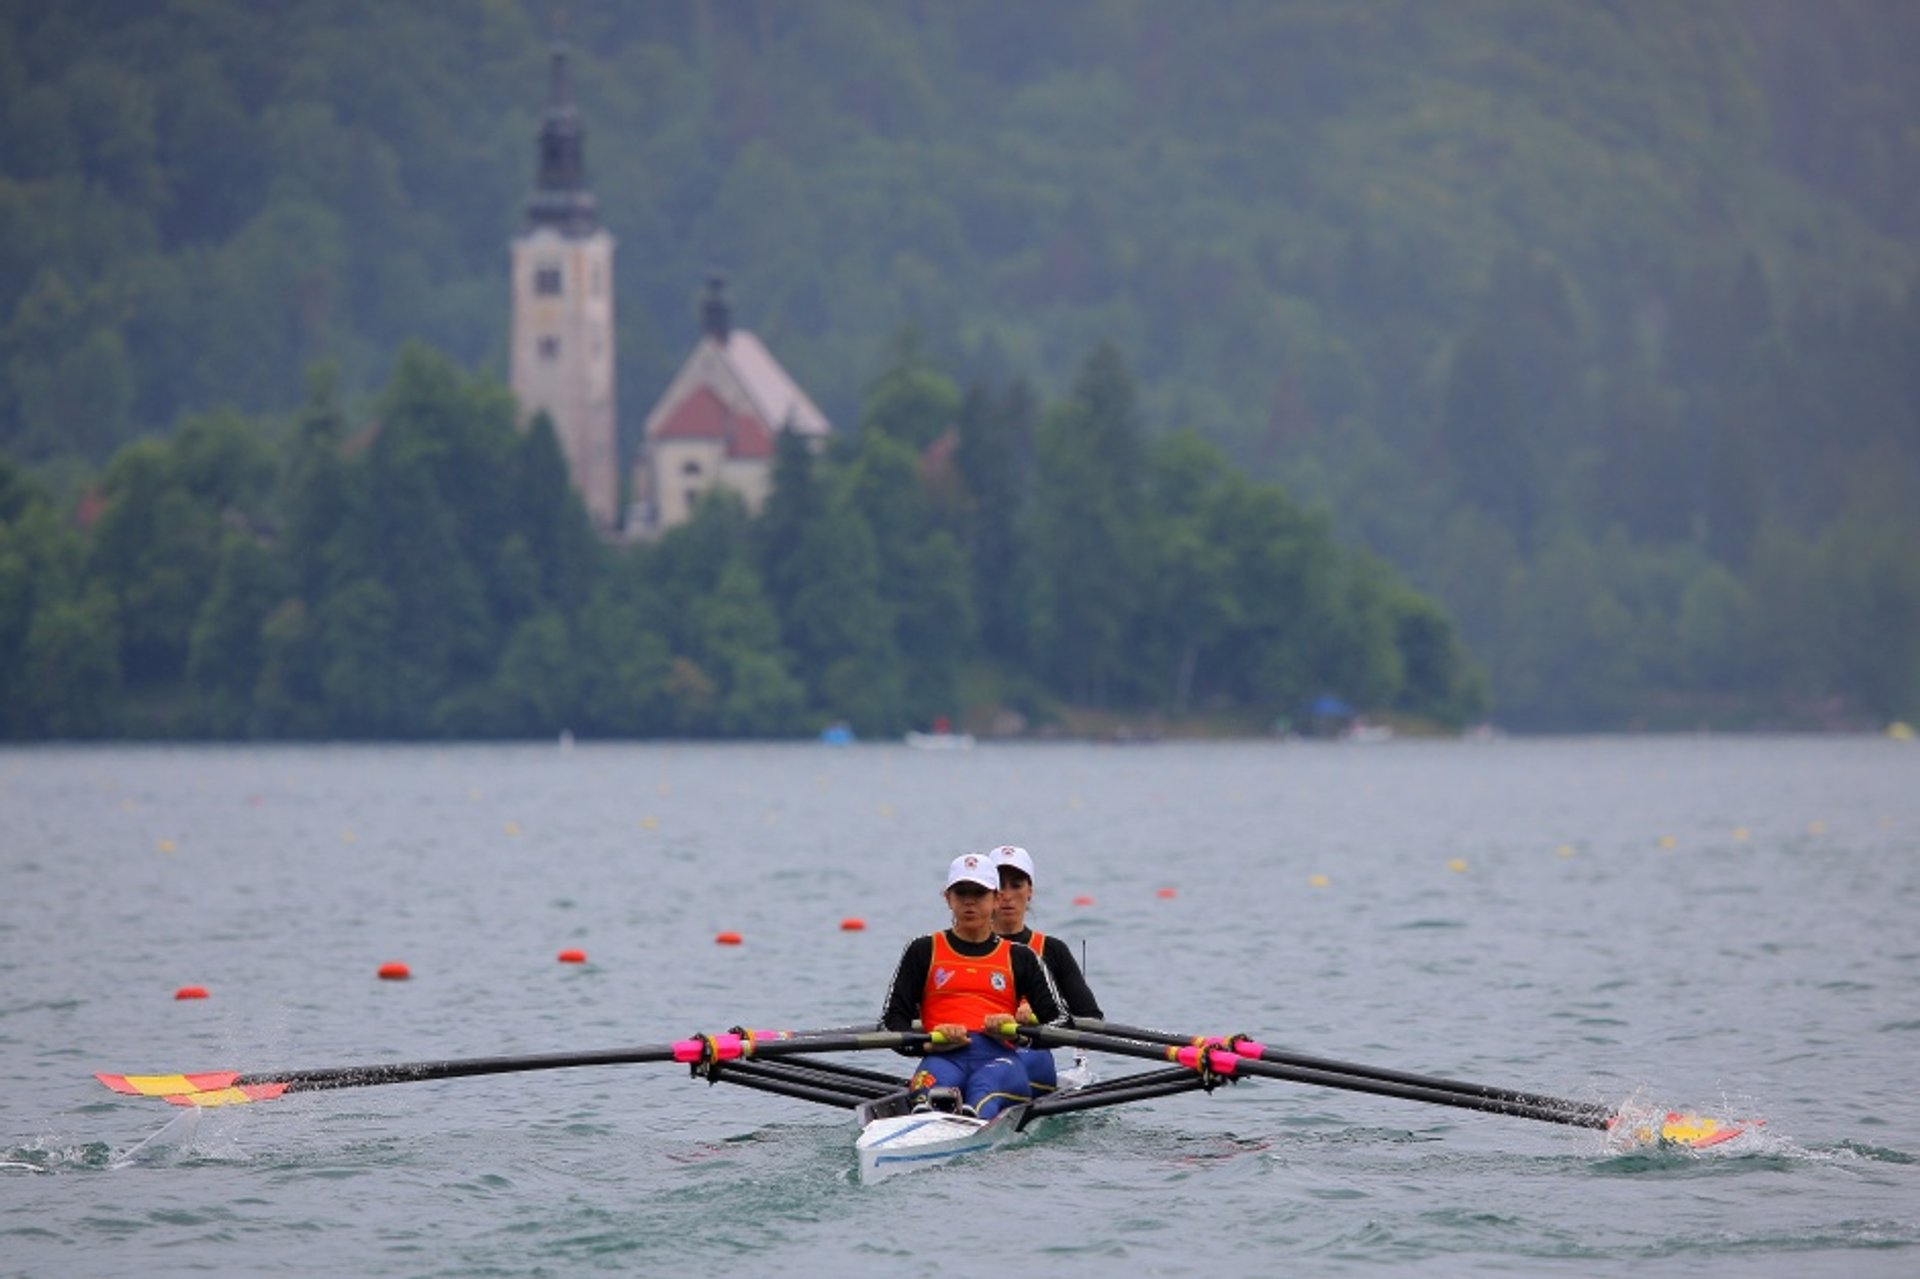 Best time for International Rowing Regatta in Slovenia 2020